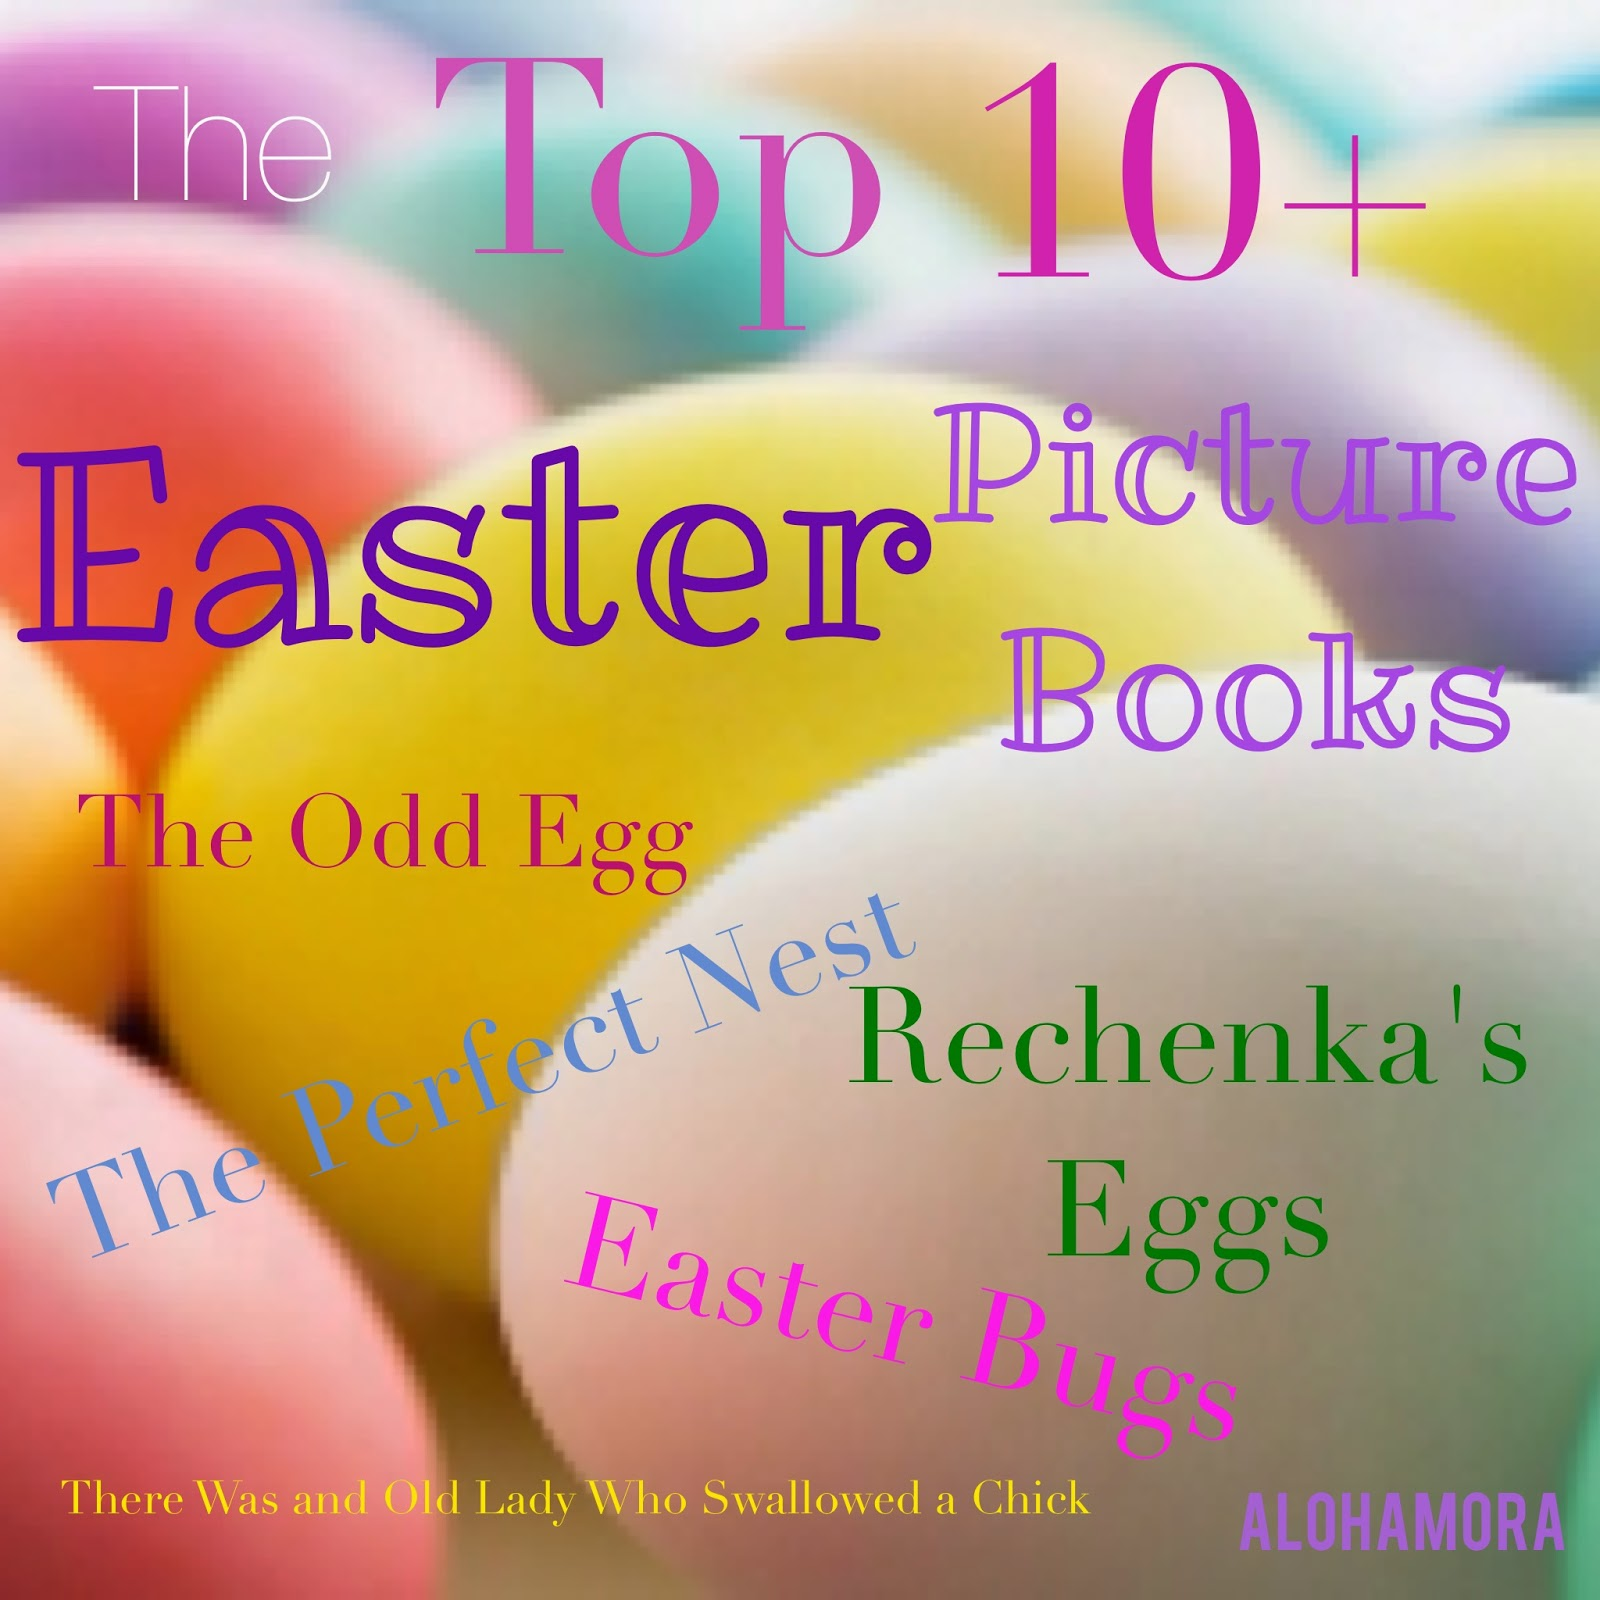 The Top 10+ Easter Picture Books Alohamora Open a Book http://alohamoraopenabook.blogspot.com/